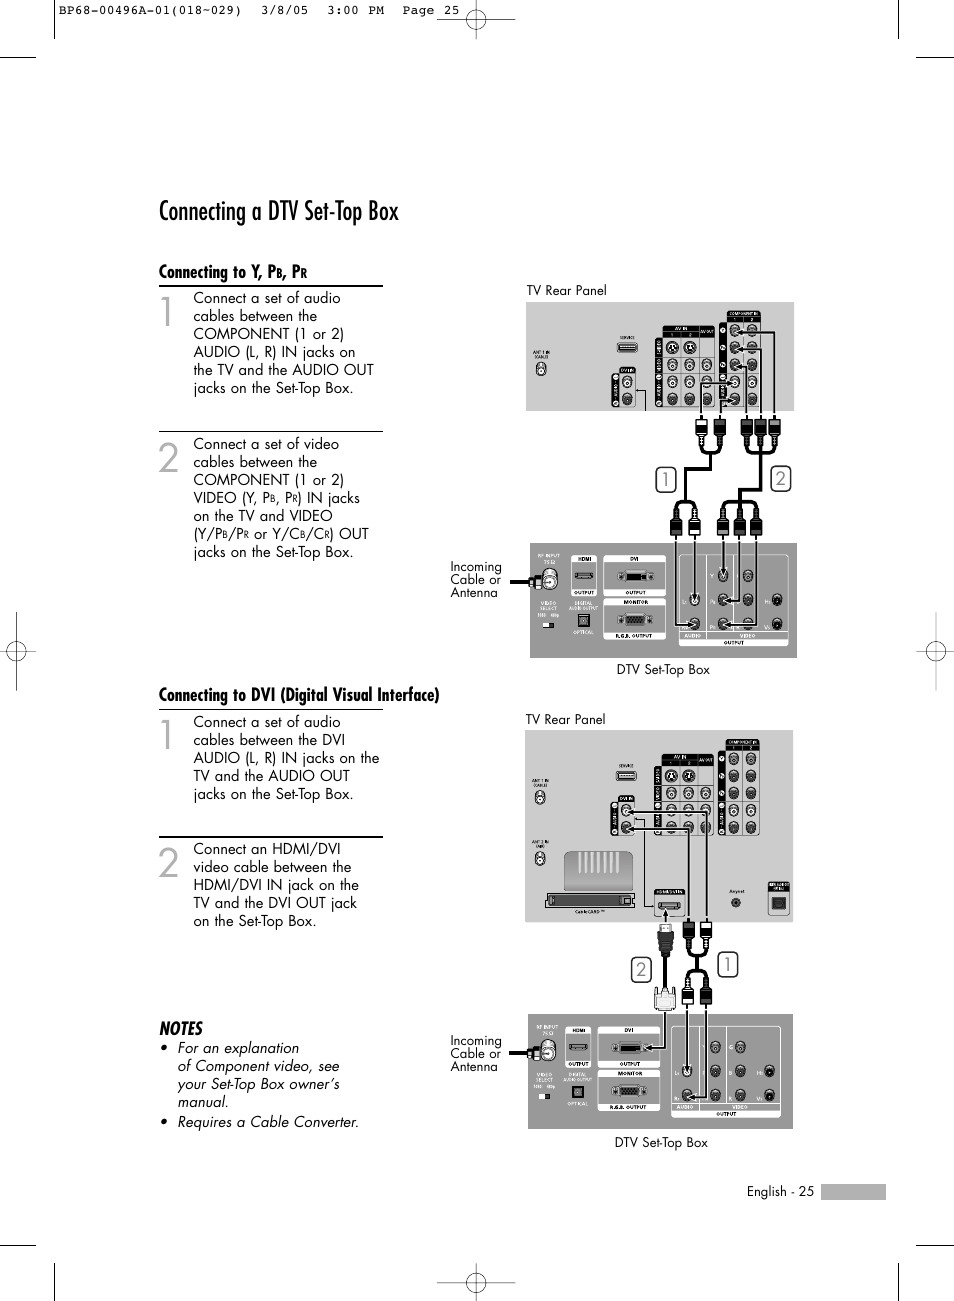 Connecting a dtv set-top box, Connecting to y, pb, pr